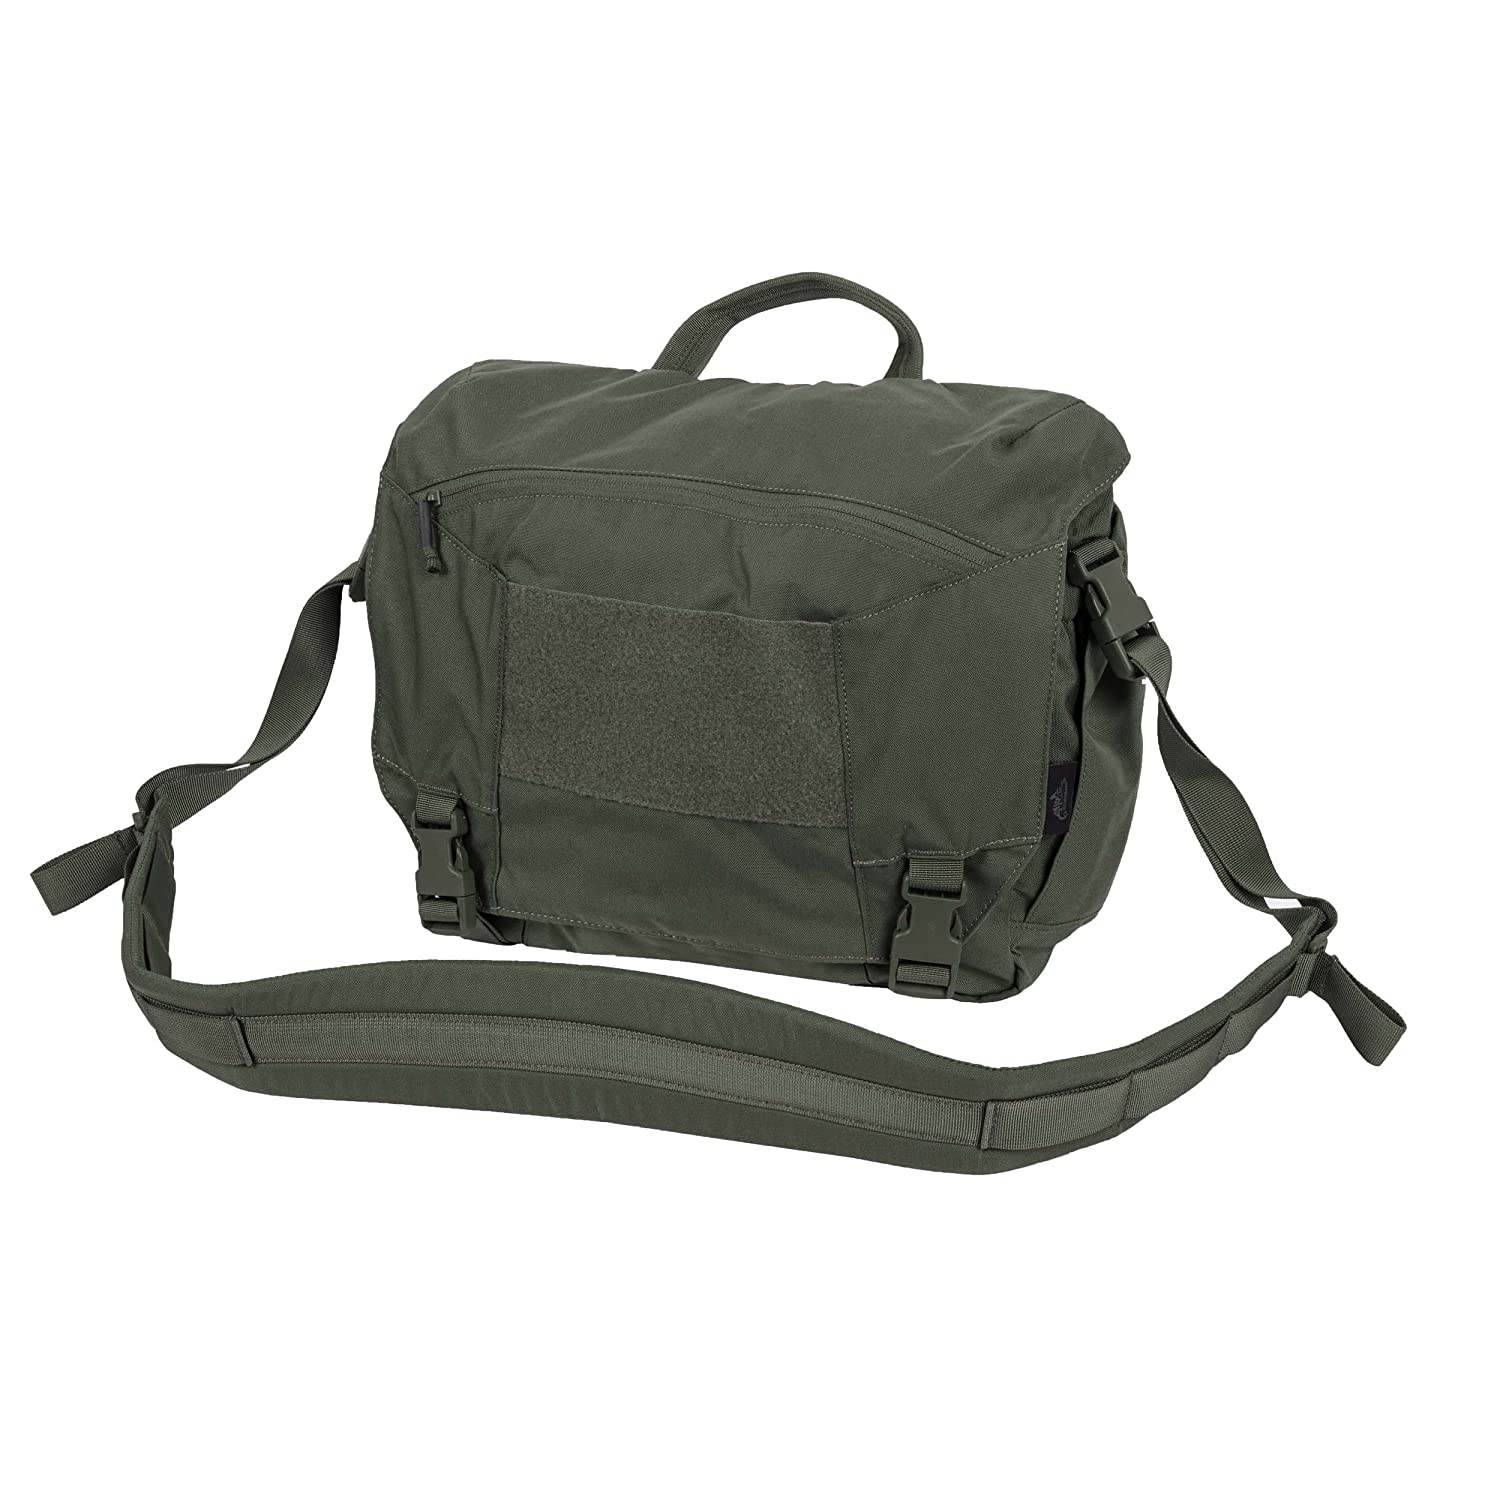 Helikon-Tex Urban Courier Bag Medium -Cordura- Olive Grün